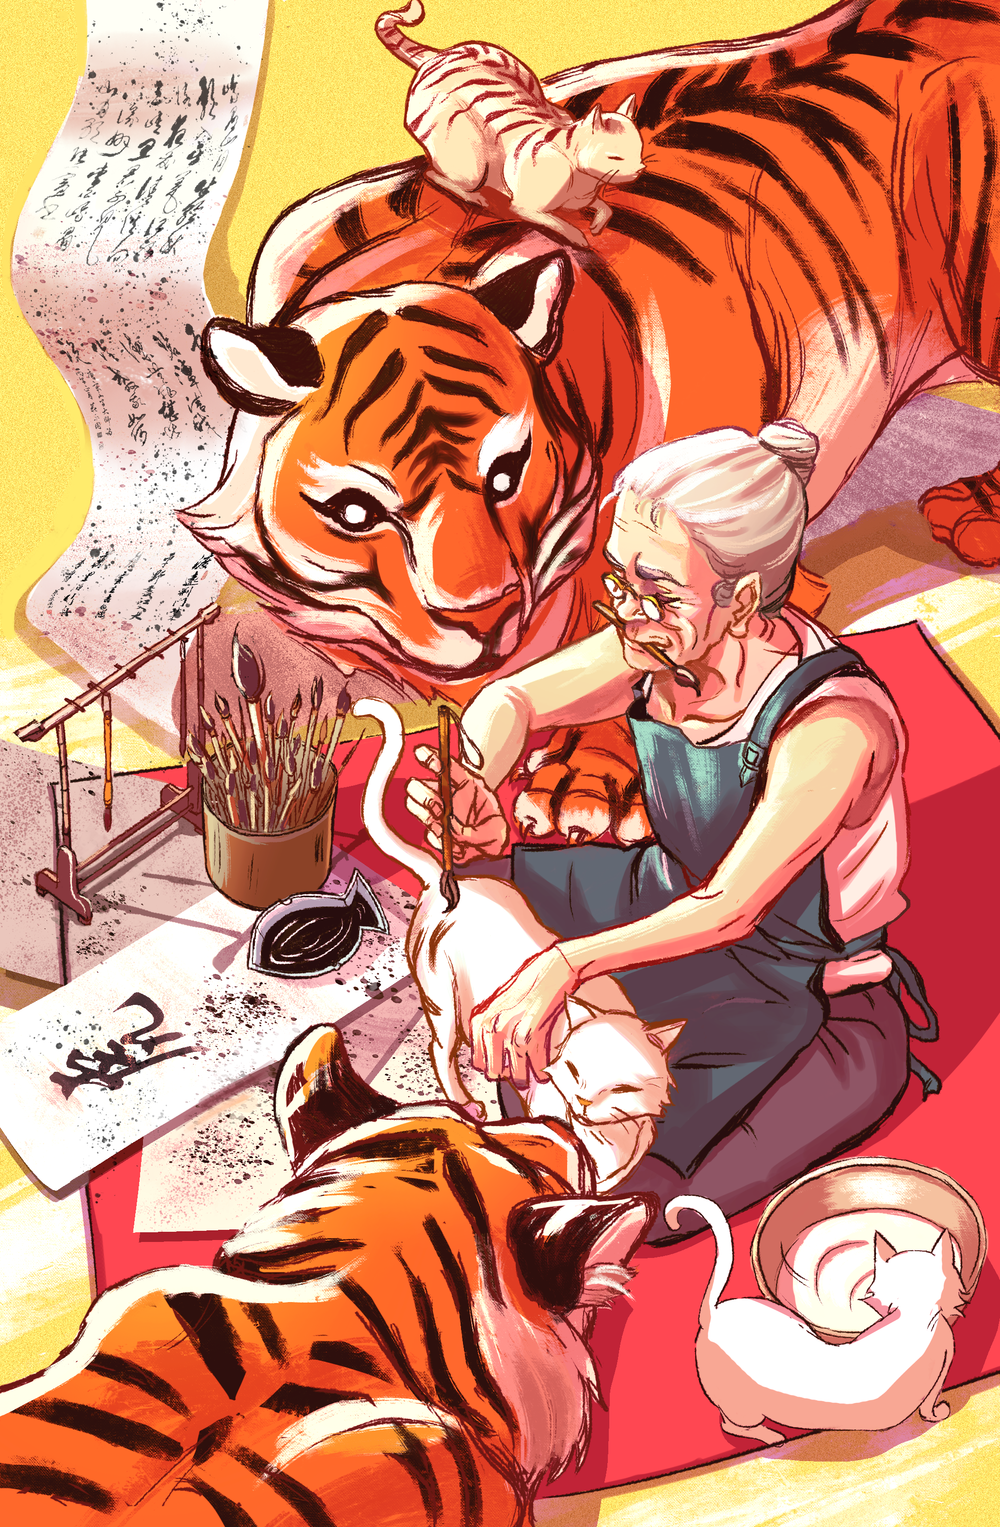 - Creating TigersAn illustration that was included in an all asian artists illustration compilation. Every artist chose an animal in the chinese zodiac to illustrate. I chose the tiger and came up with a story of an old woman who creates tigers from cats by painting stripes unto them.